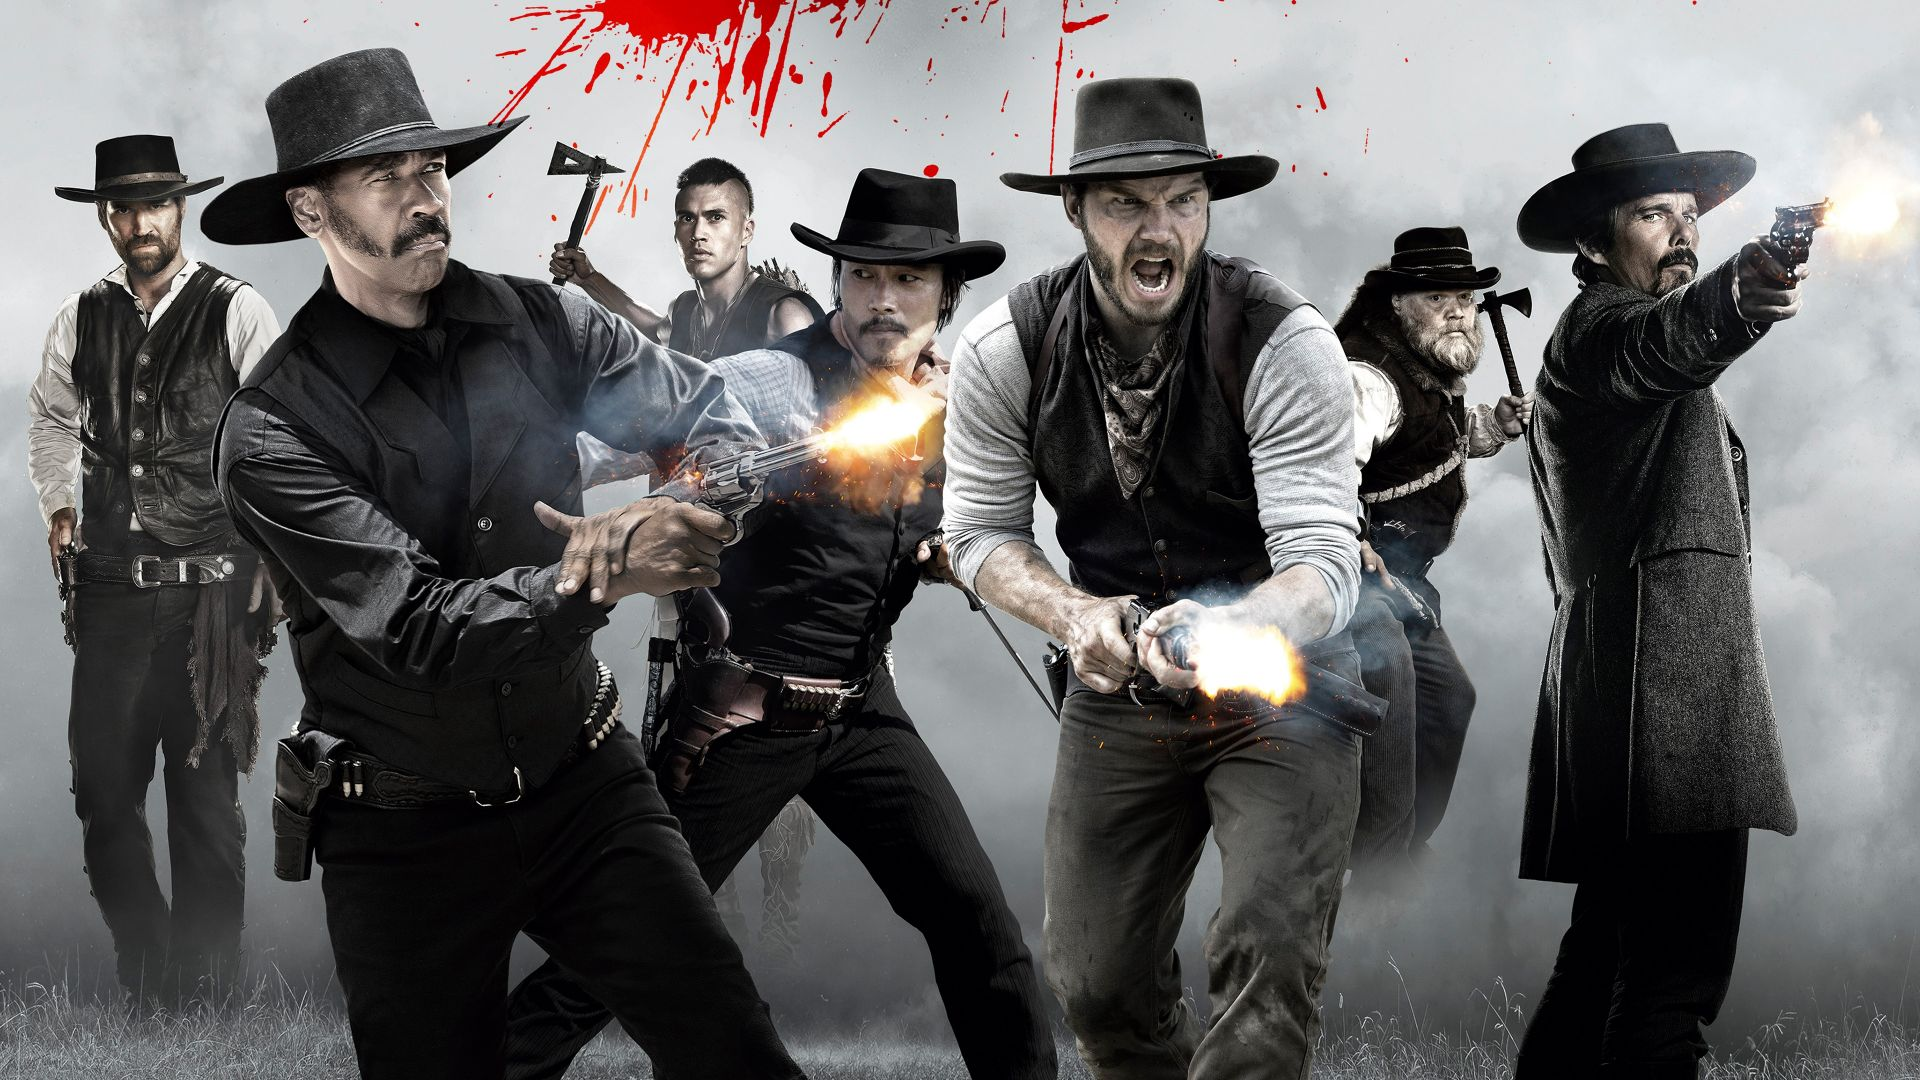 movie review magnifico Film review: the magnificent seven satisfying, action-packed remake of the 1960 western classic, with an appealing ensemble cast led by denzel washington.